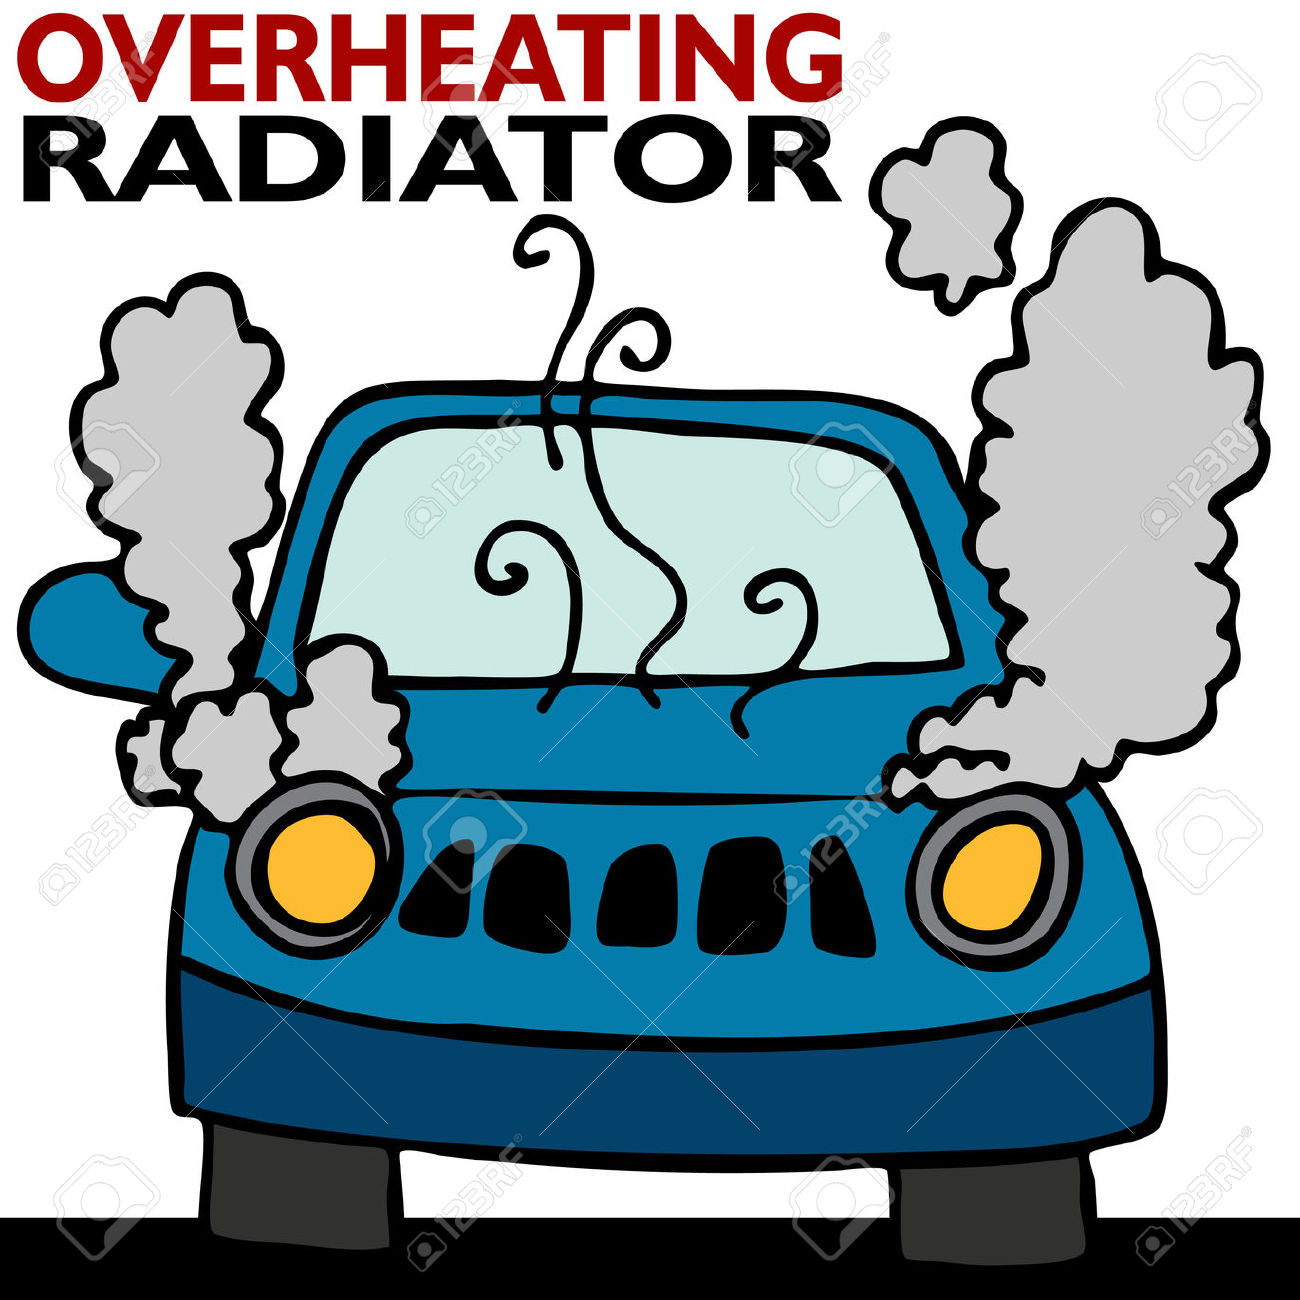 Overheating Radiator Royalty Free Cliparts, Vectors, And Stock.